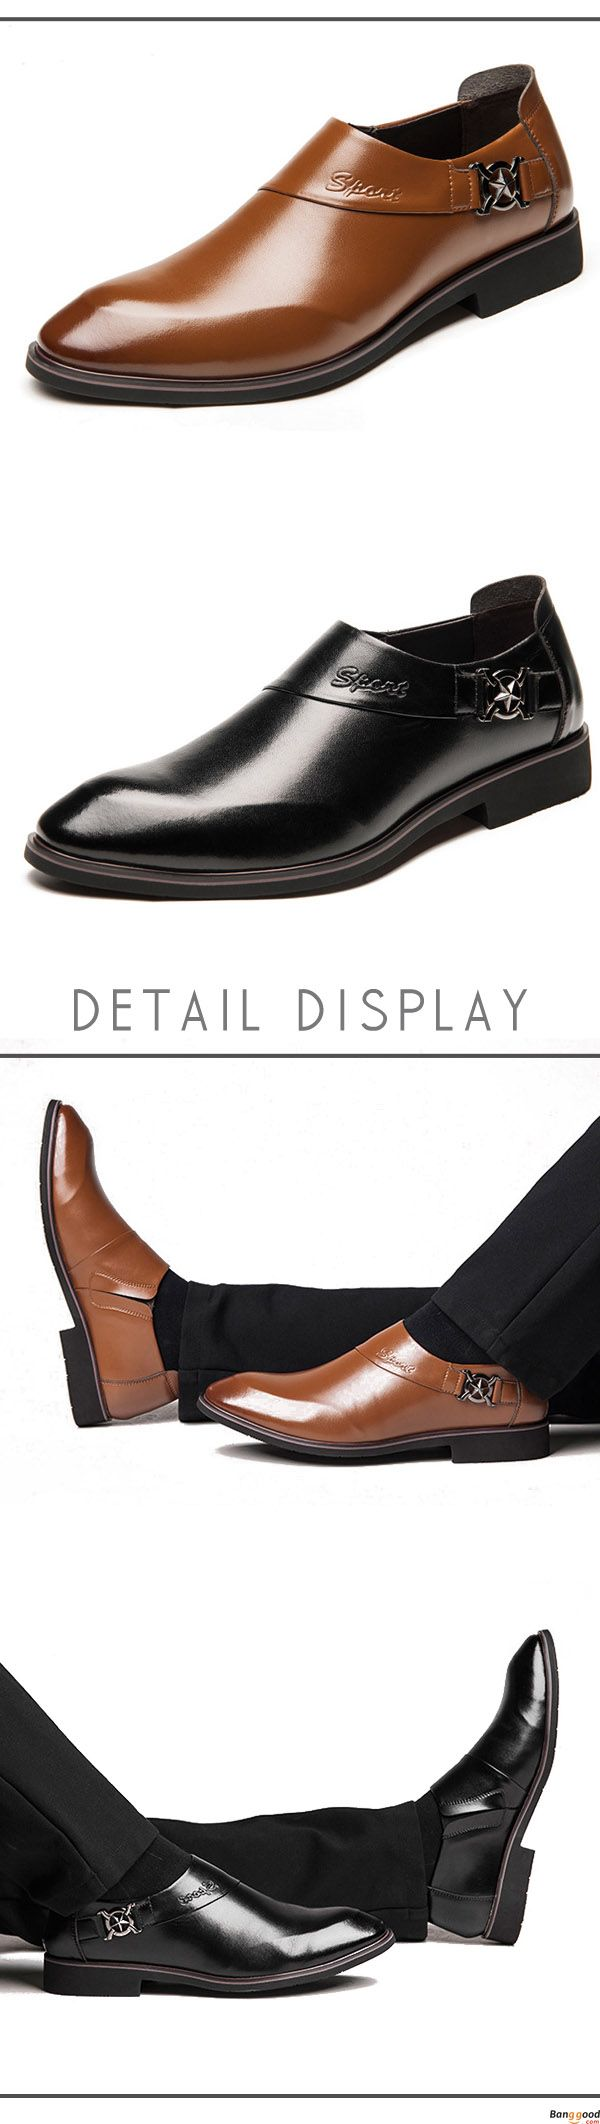 Men Comfy Soft Leather Pointed Toe Business Formal Shoes. Fashion and chic. Shop at banggood with super affordable price.